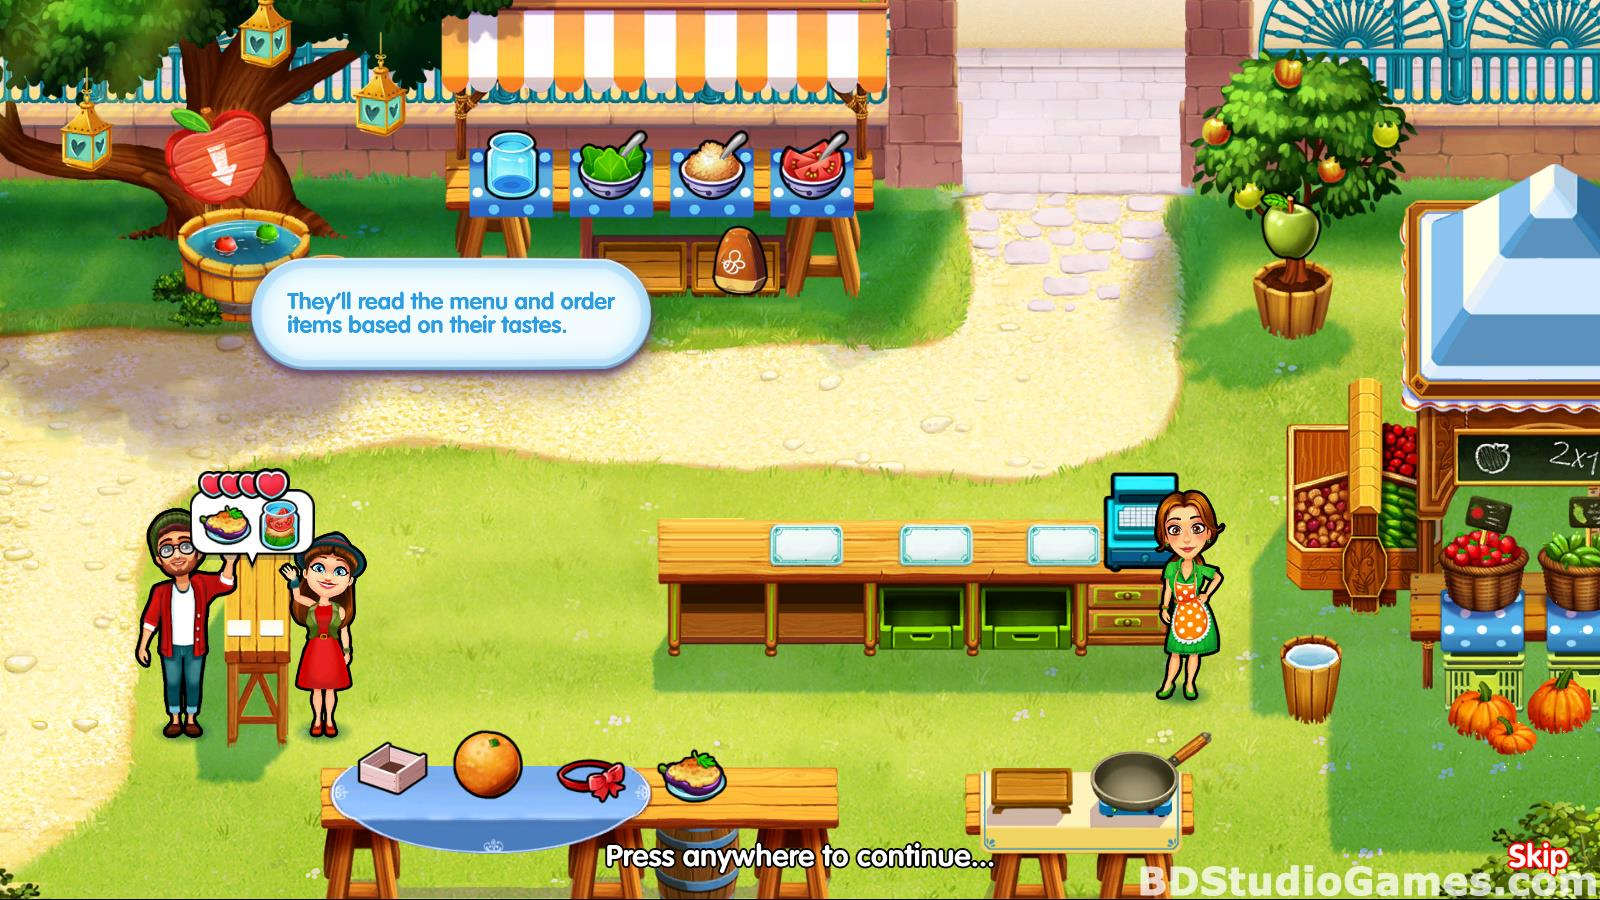 Delicious: Emily's Road Trip Collector's Edition Free Download Screenshots 05